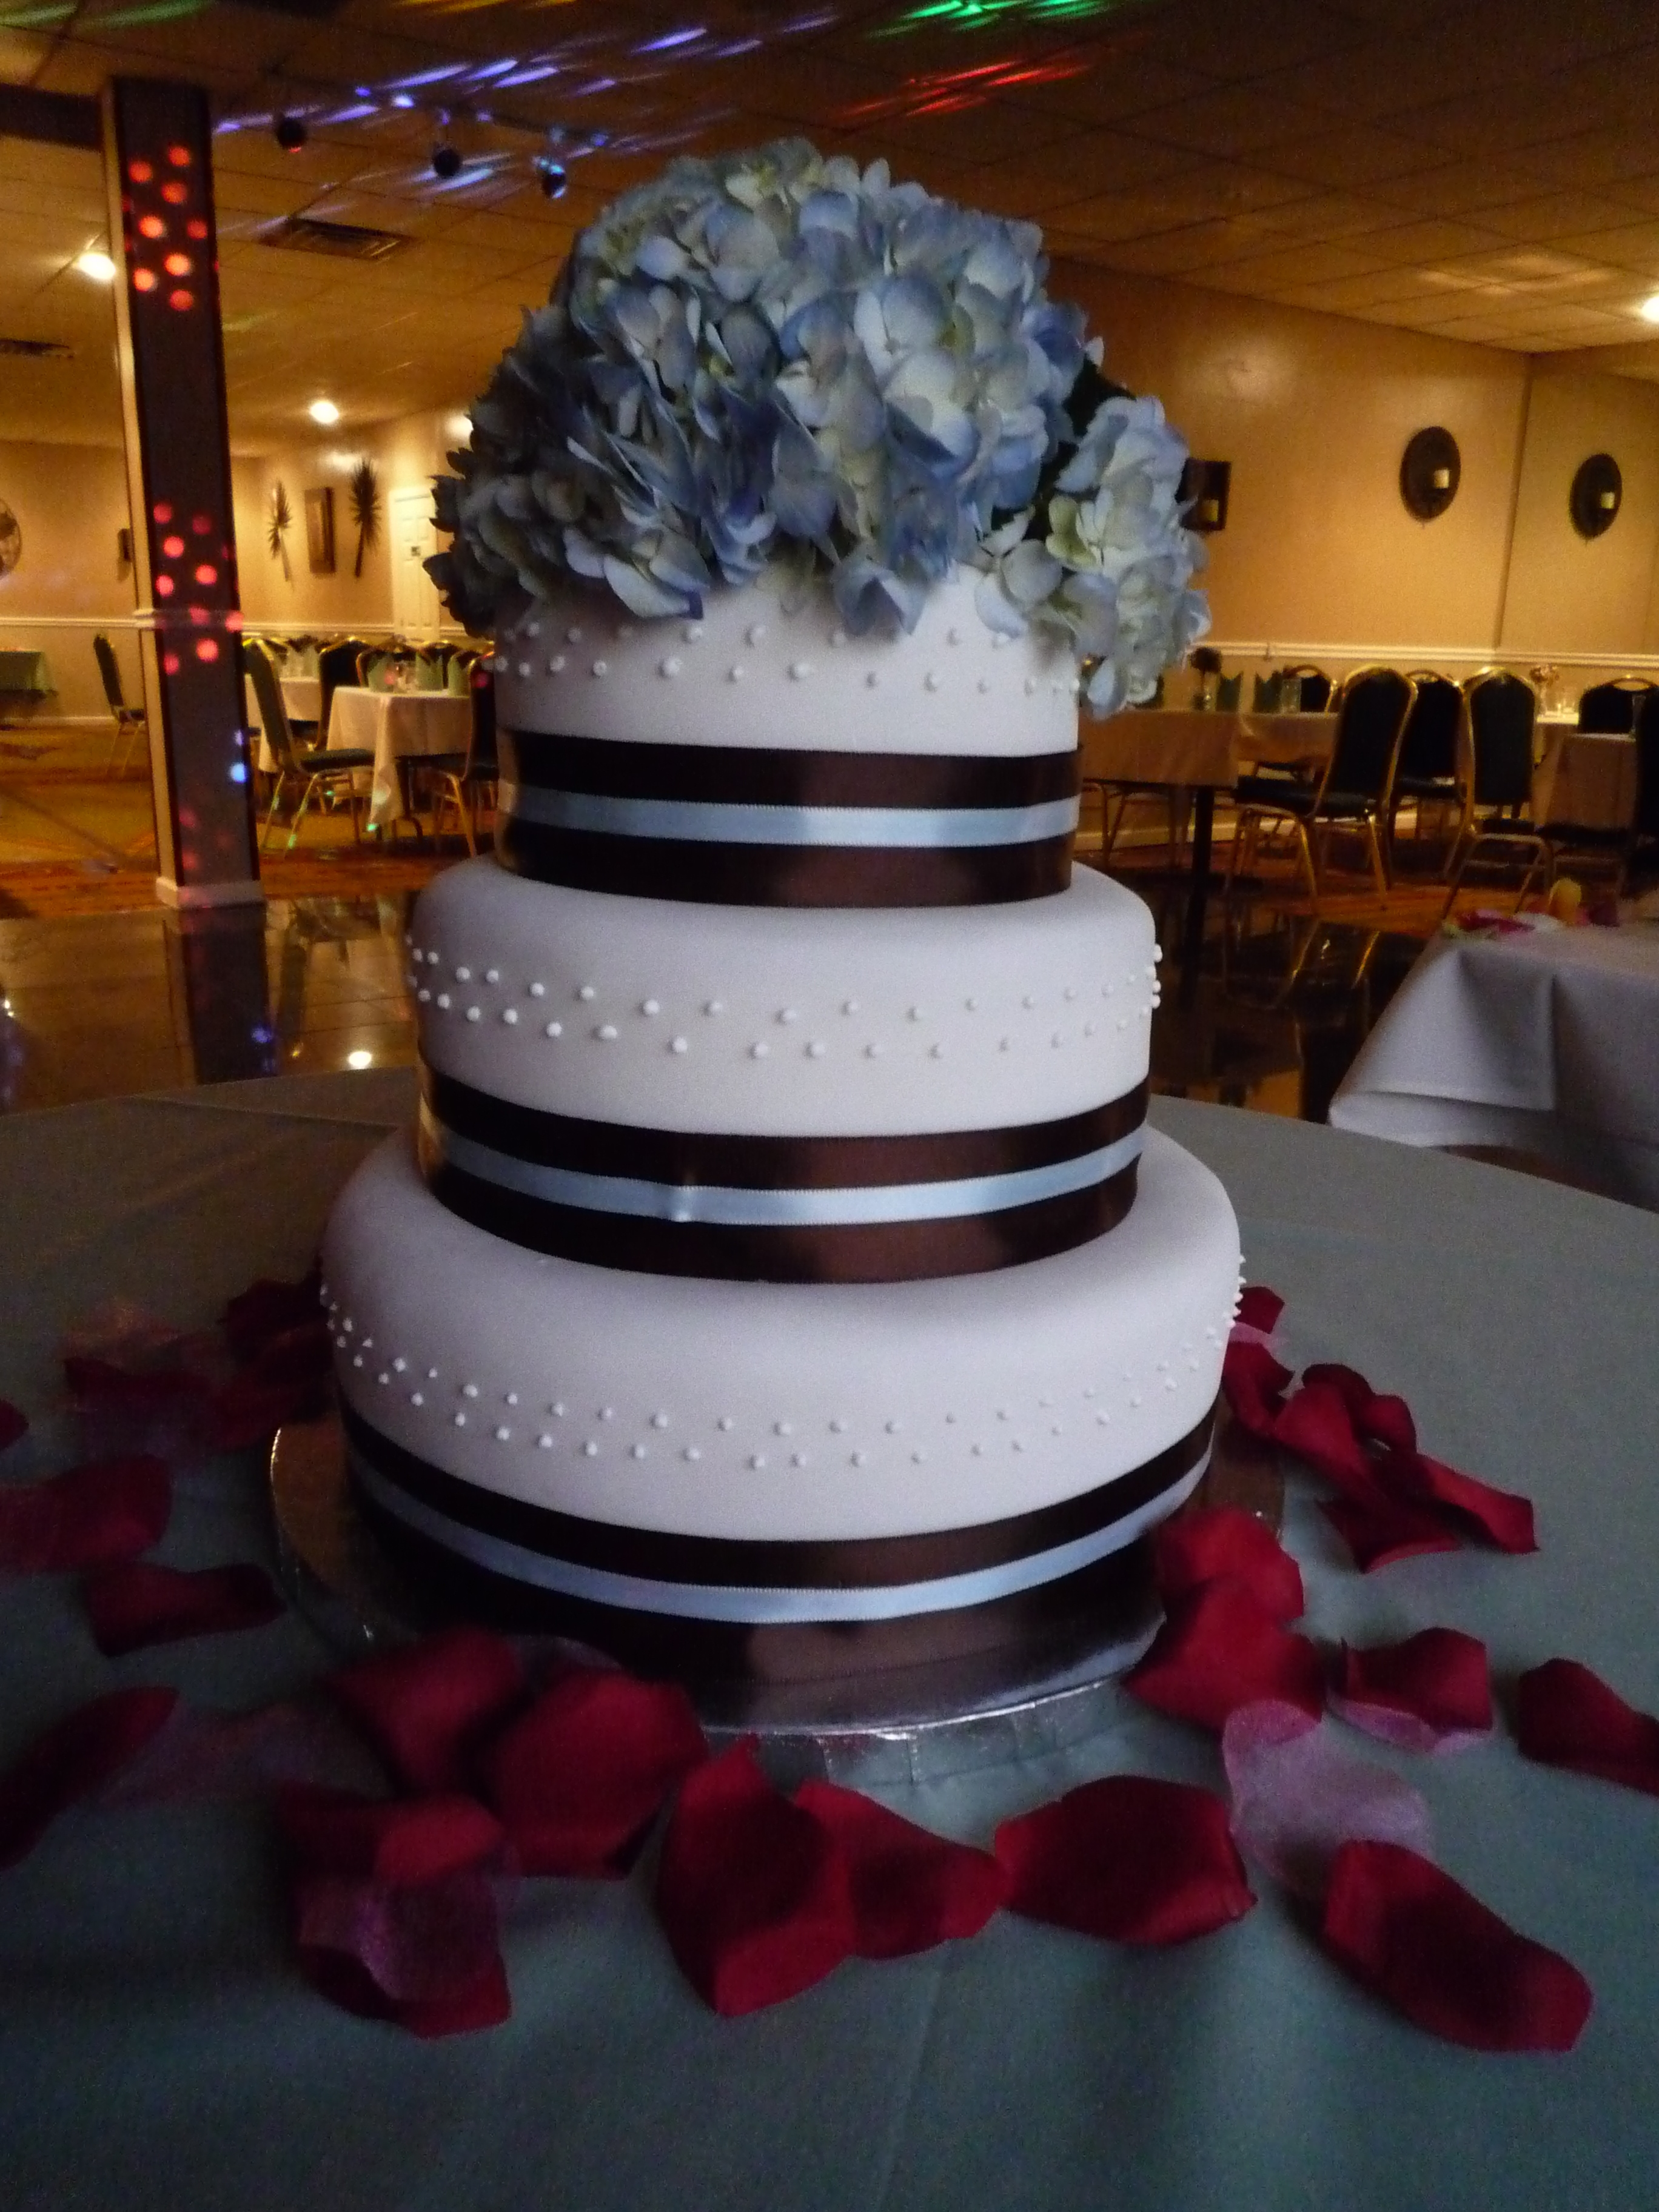 Flowers & Decor, Cakes, white, black, cake, Ribbon Wedding Cakes, Flowers, Ribbon, Fresh, Ciao bella cakes